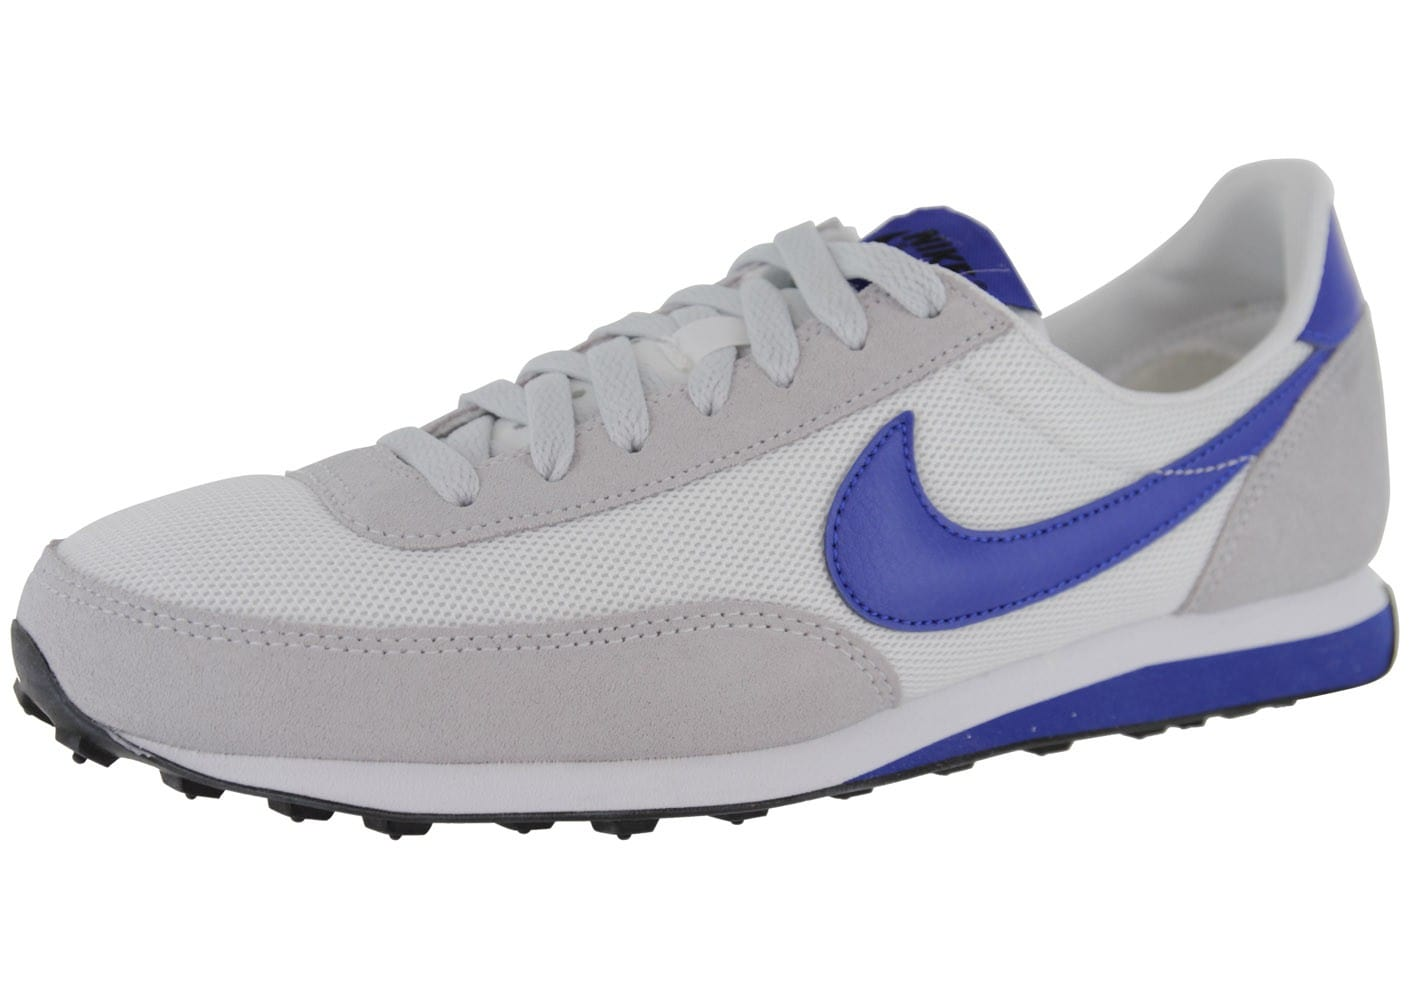 nike elite si blanche chaussures homme chausport. Black Bedroom Furniture Sets. Home Design Ideas